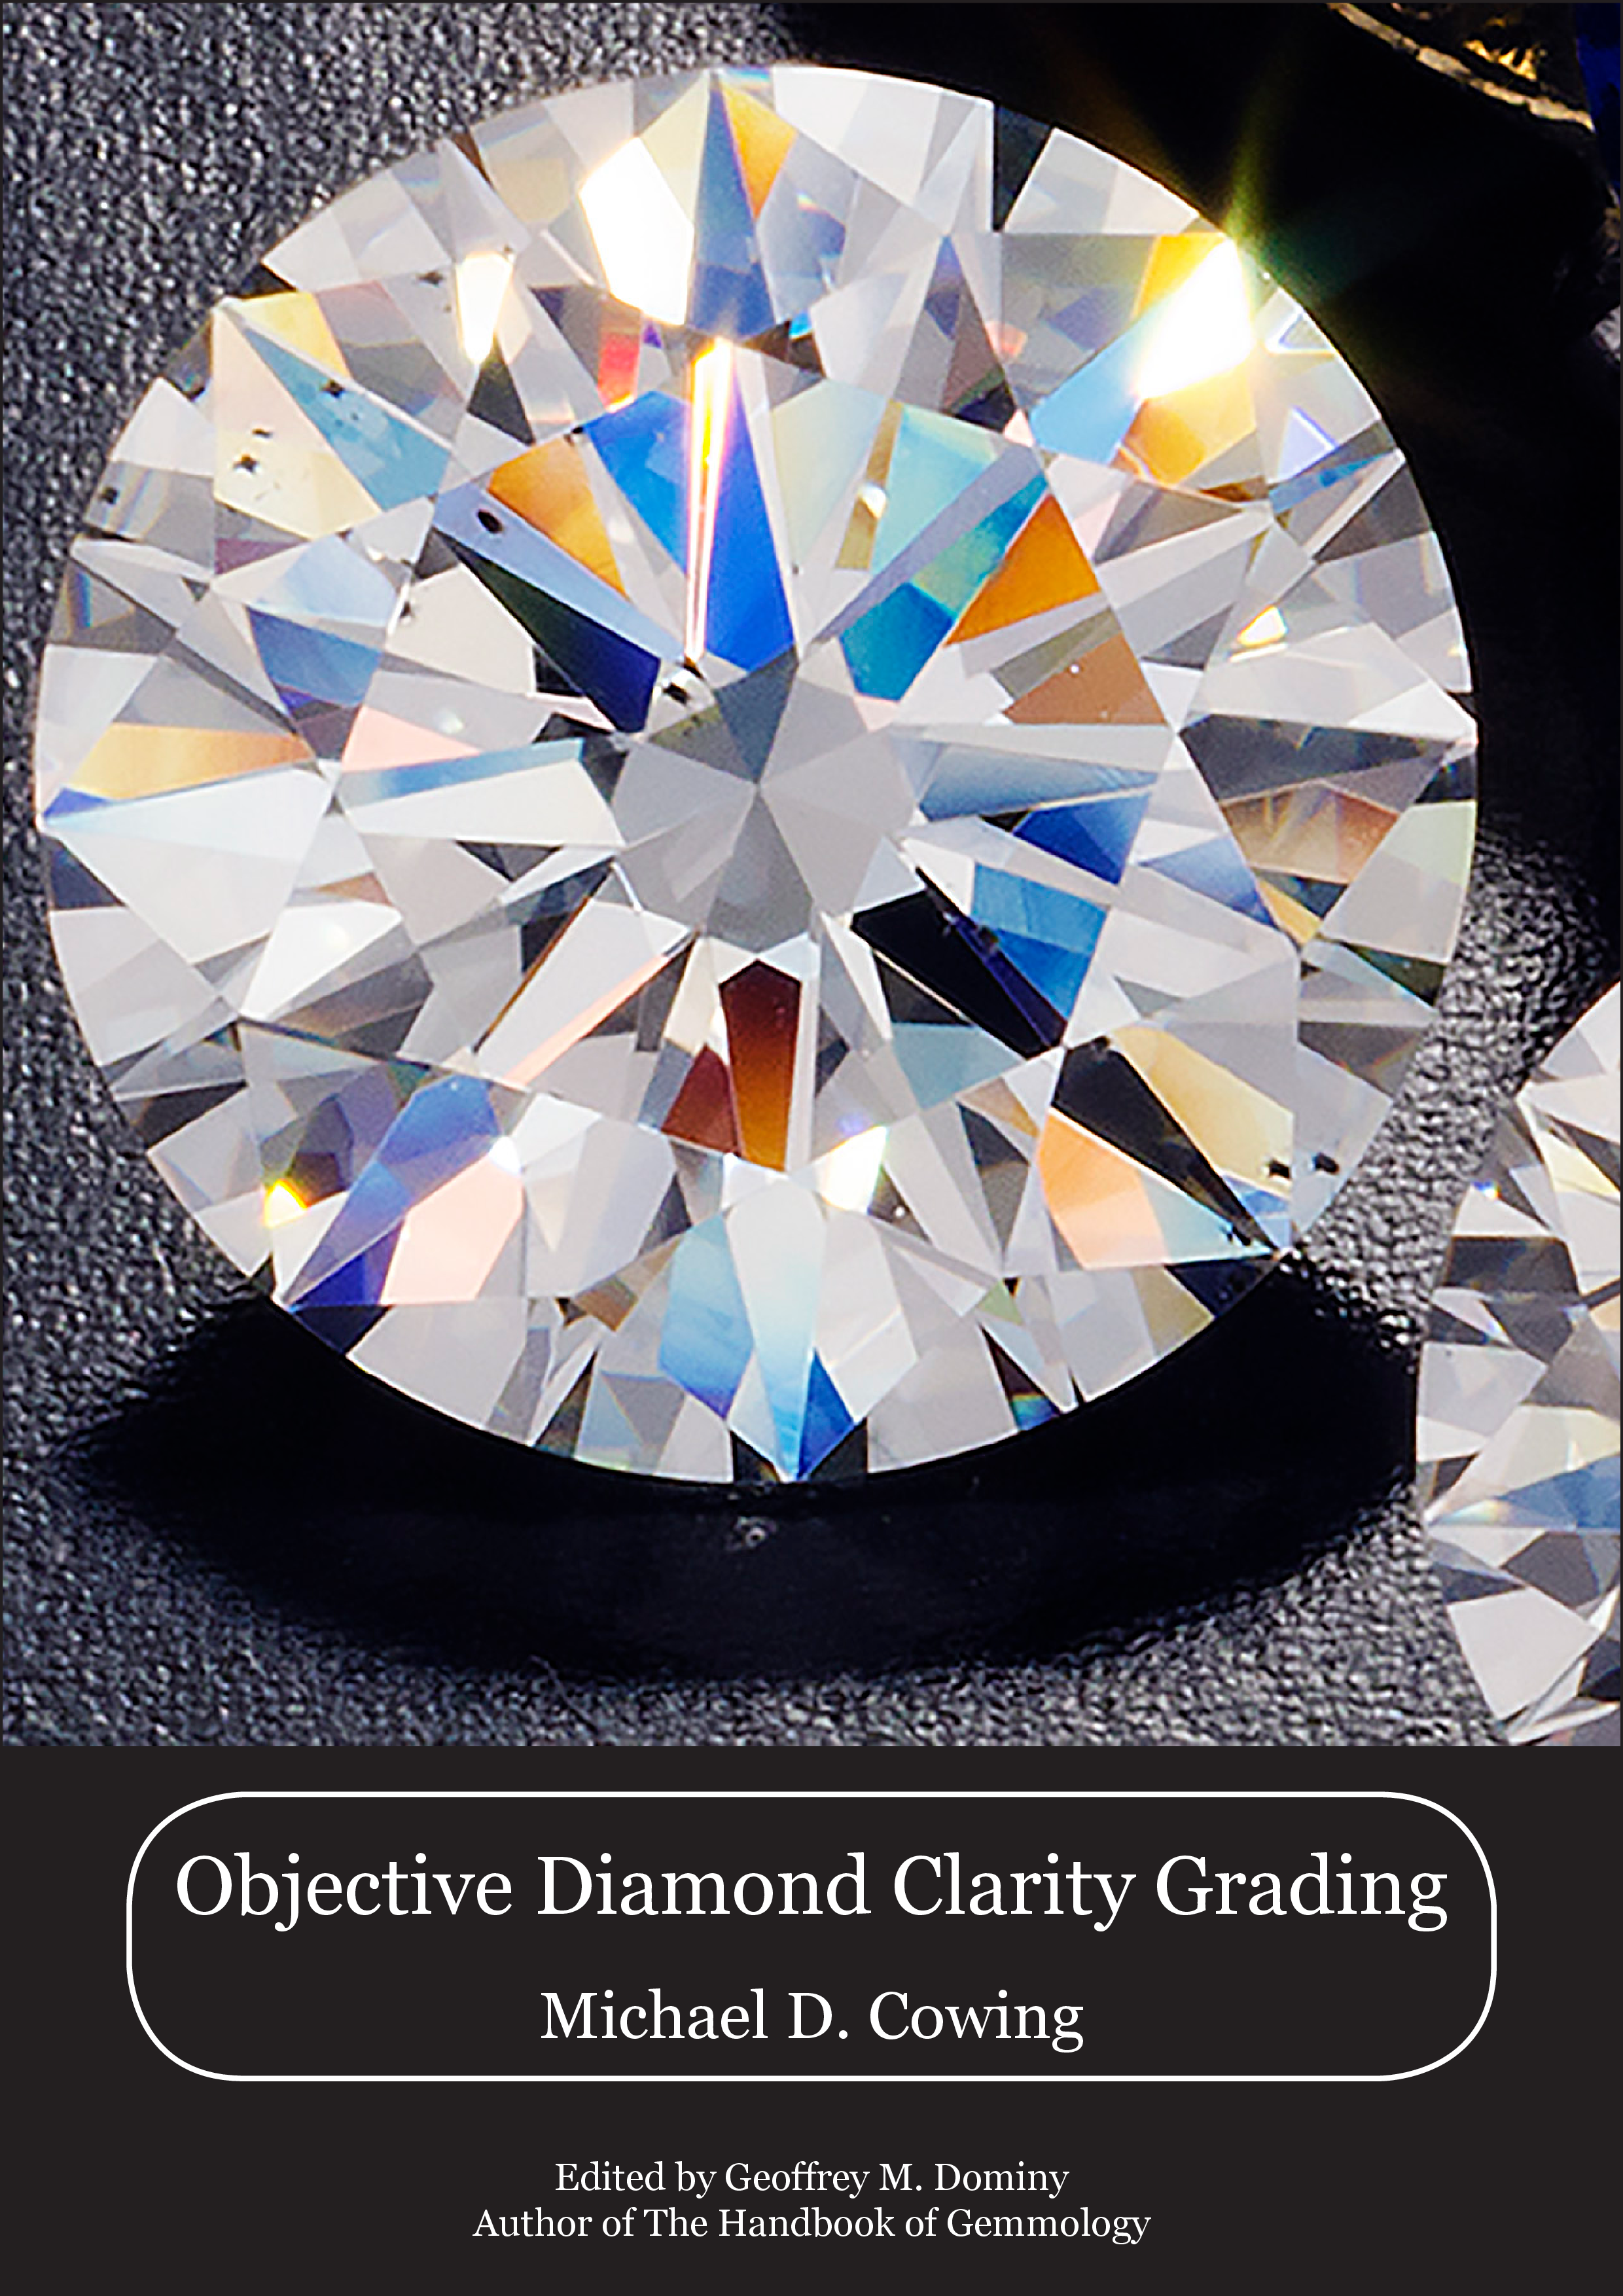 Objective Diamond Clarity Grading